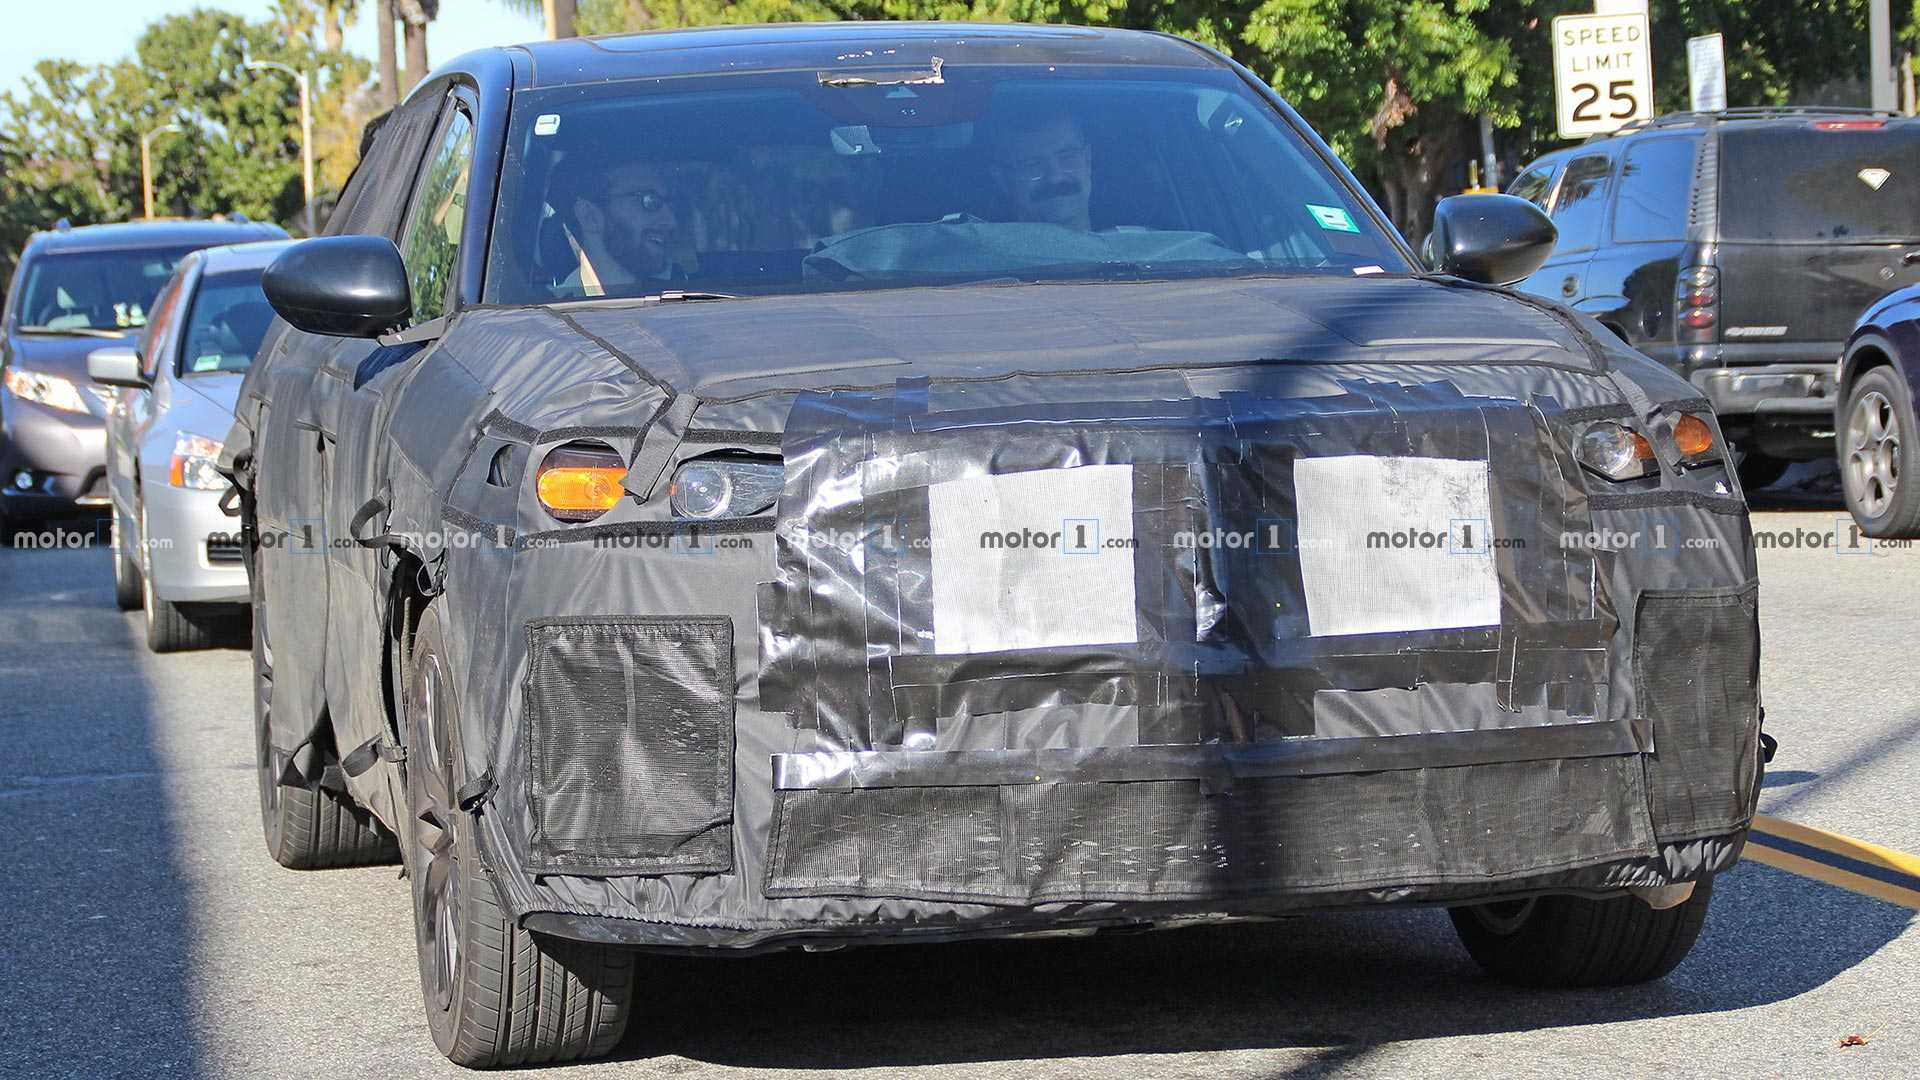 27 All New 2020 Acura Mdx Spy Shots Redesign and Concept with 2020 Acura Mdx Spy Shots